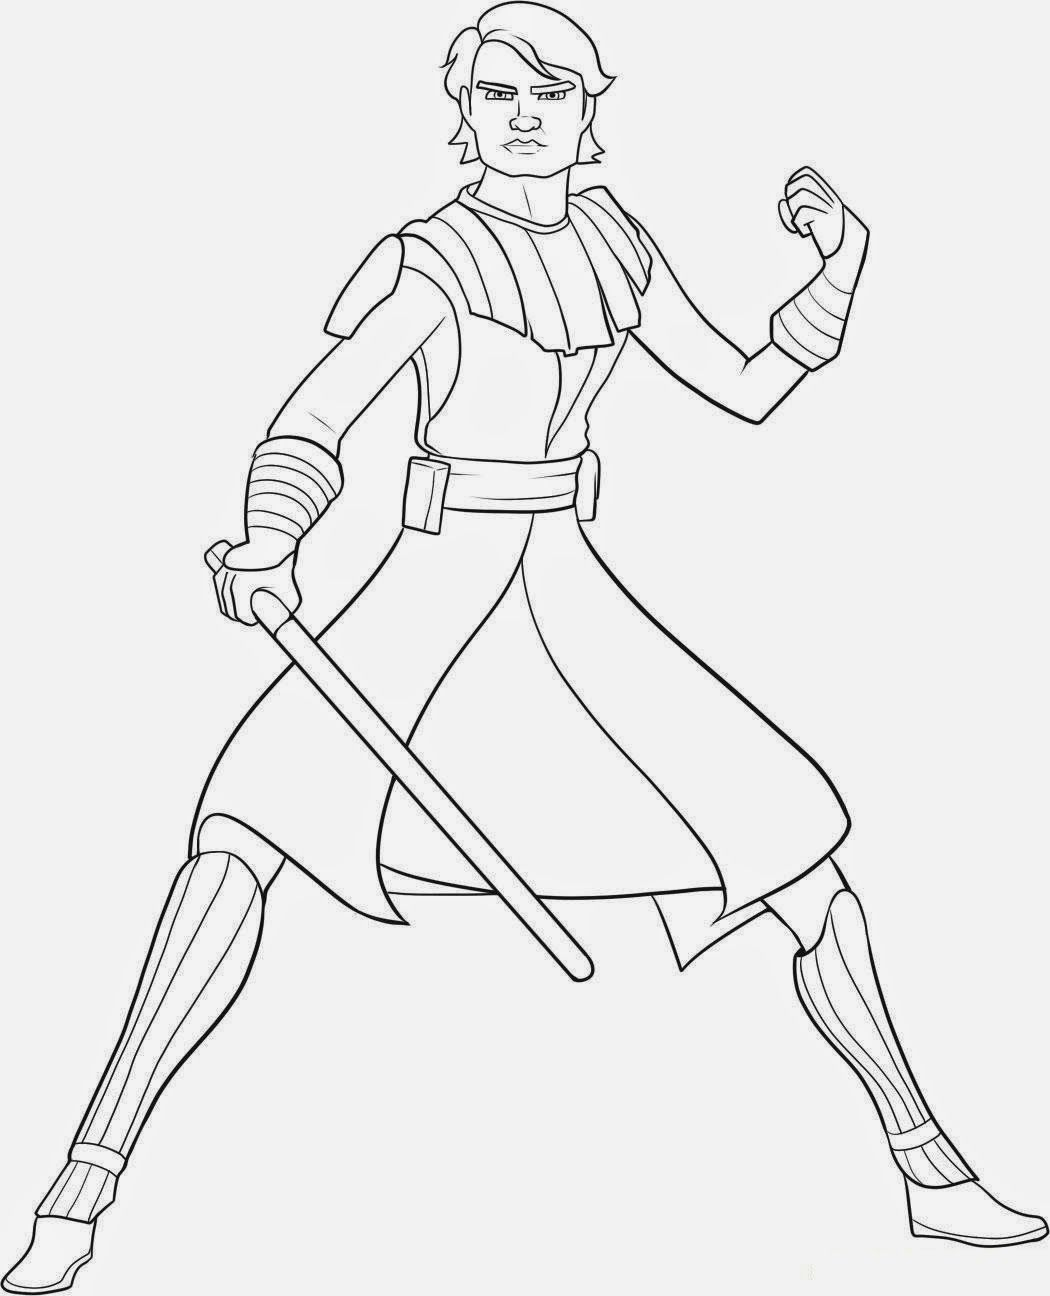 luke 5 coloring pages - photo#23